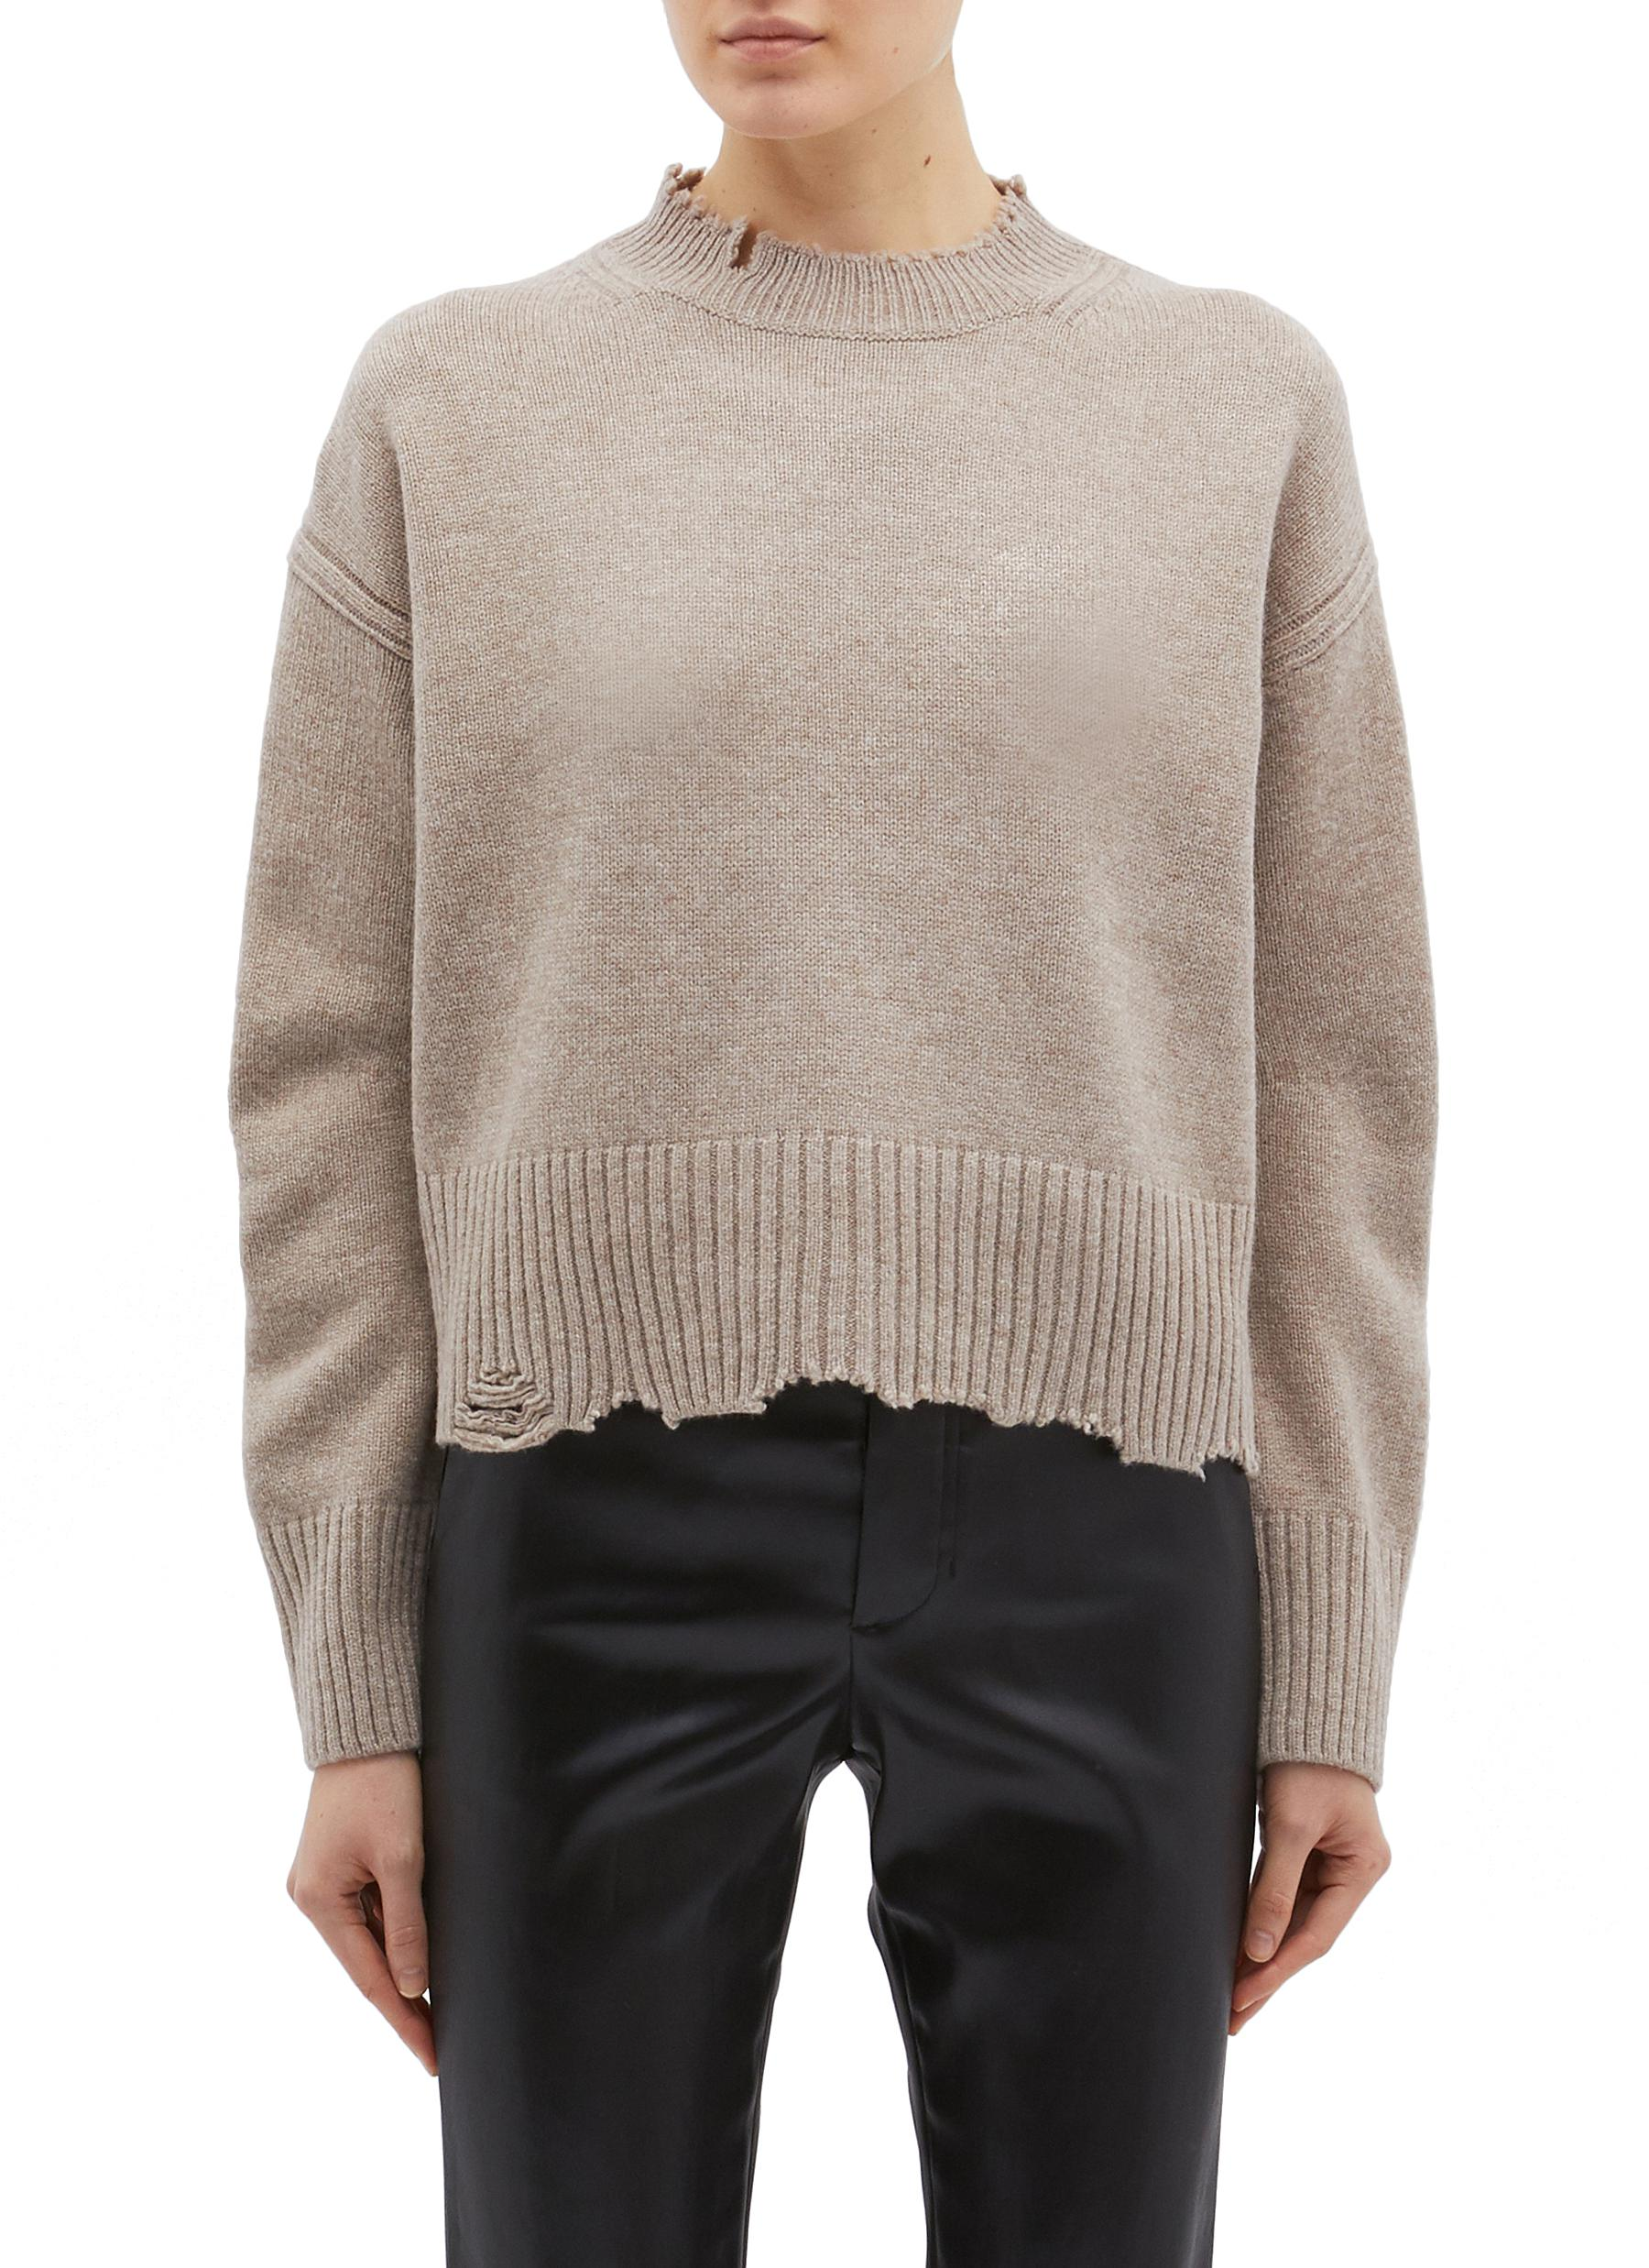 Distressed wool-cashmere sweater by Helmut Lang